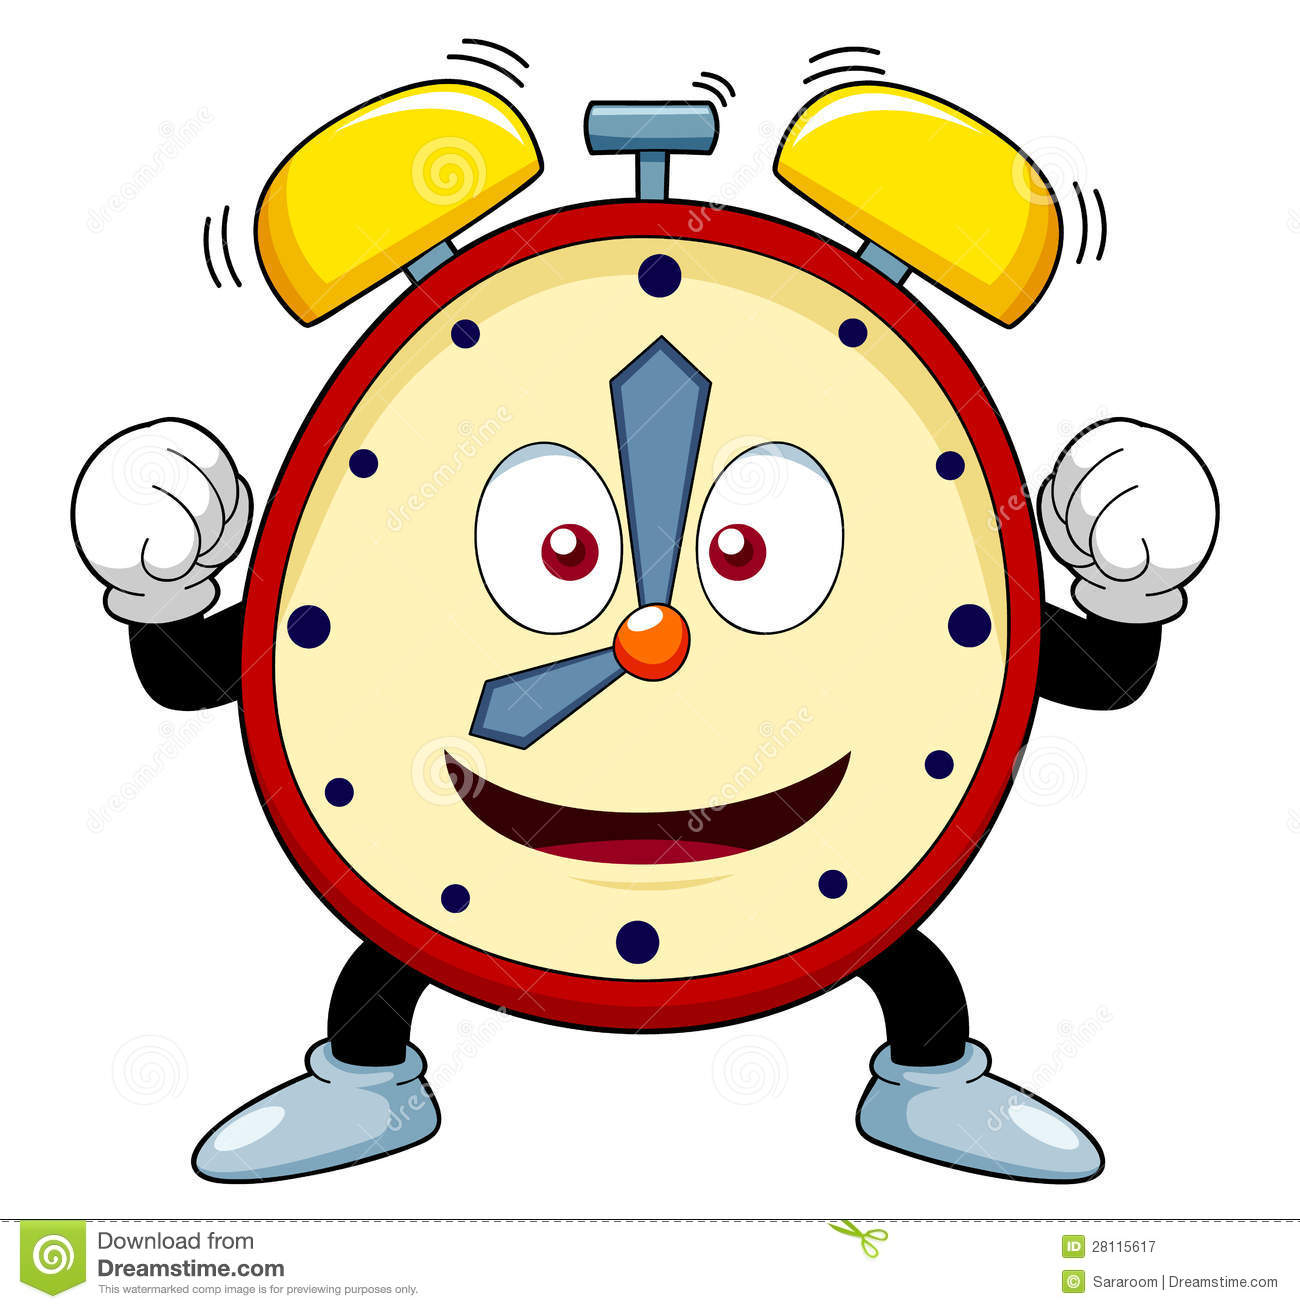 Cute animal with clock clipart - ClipartFest freeuse